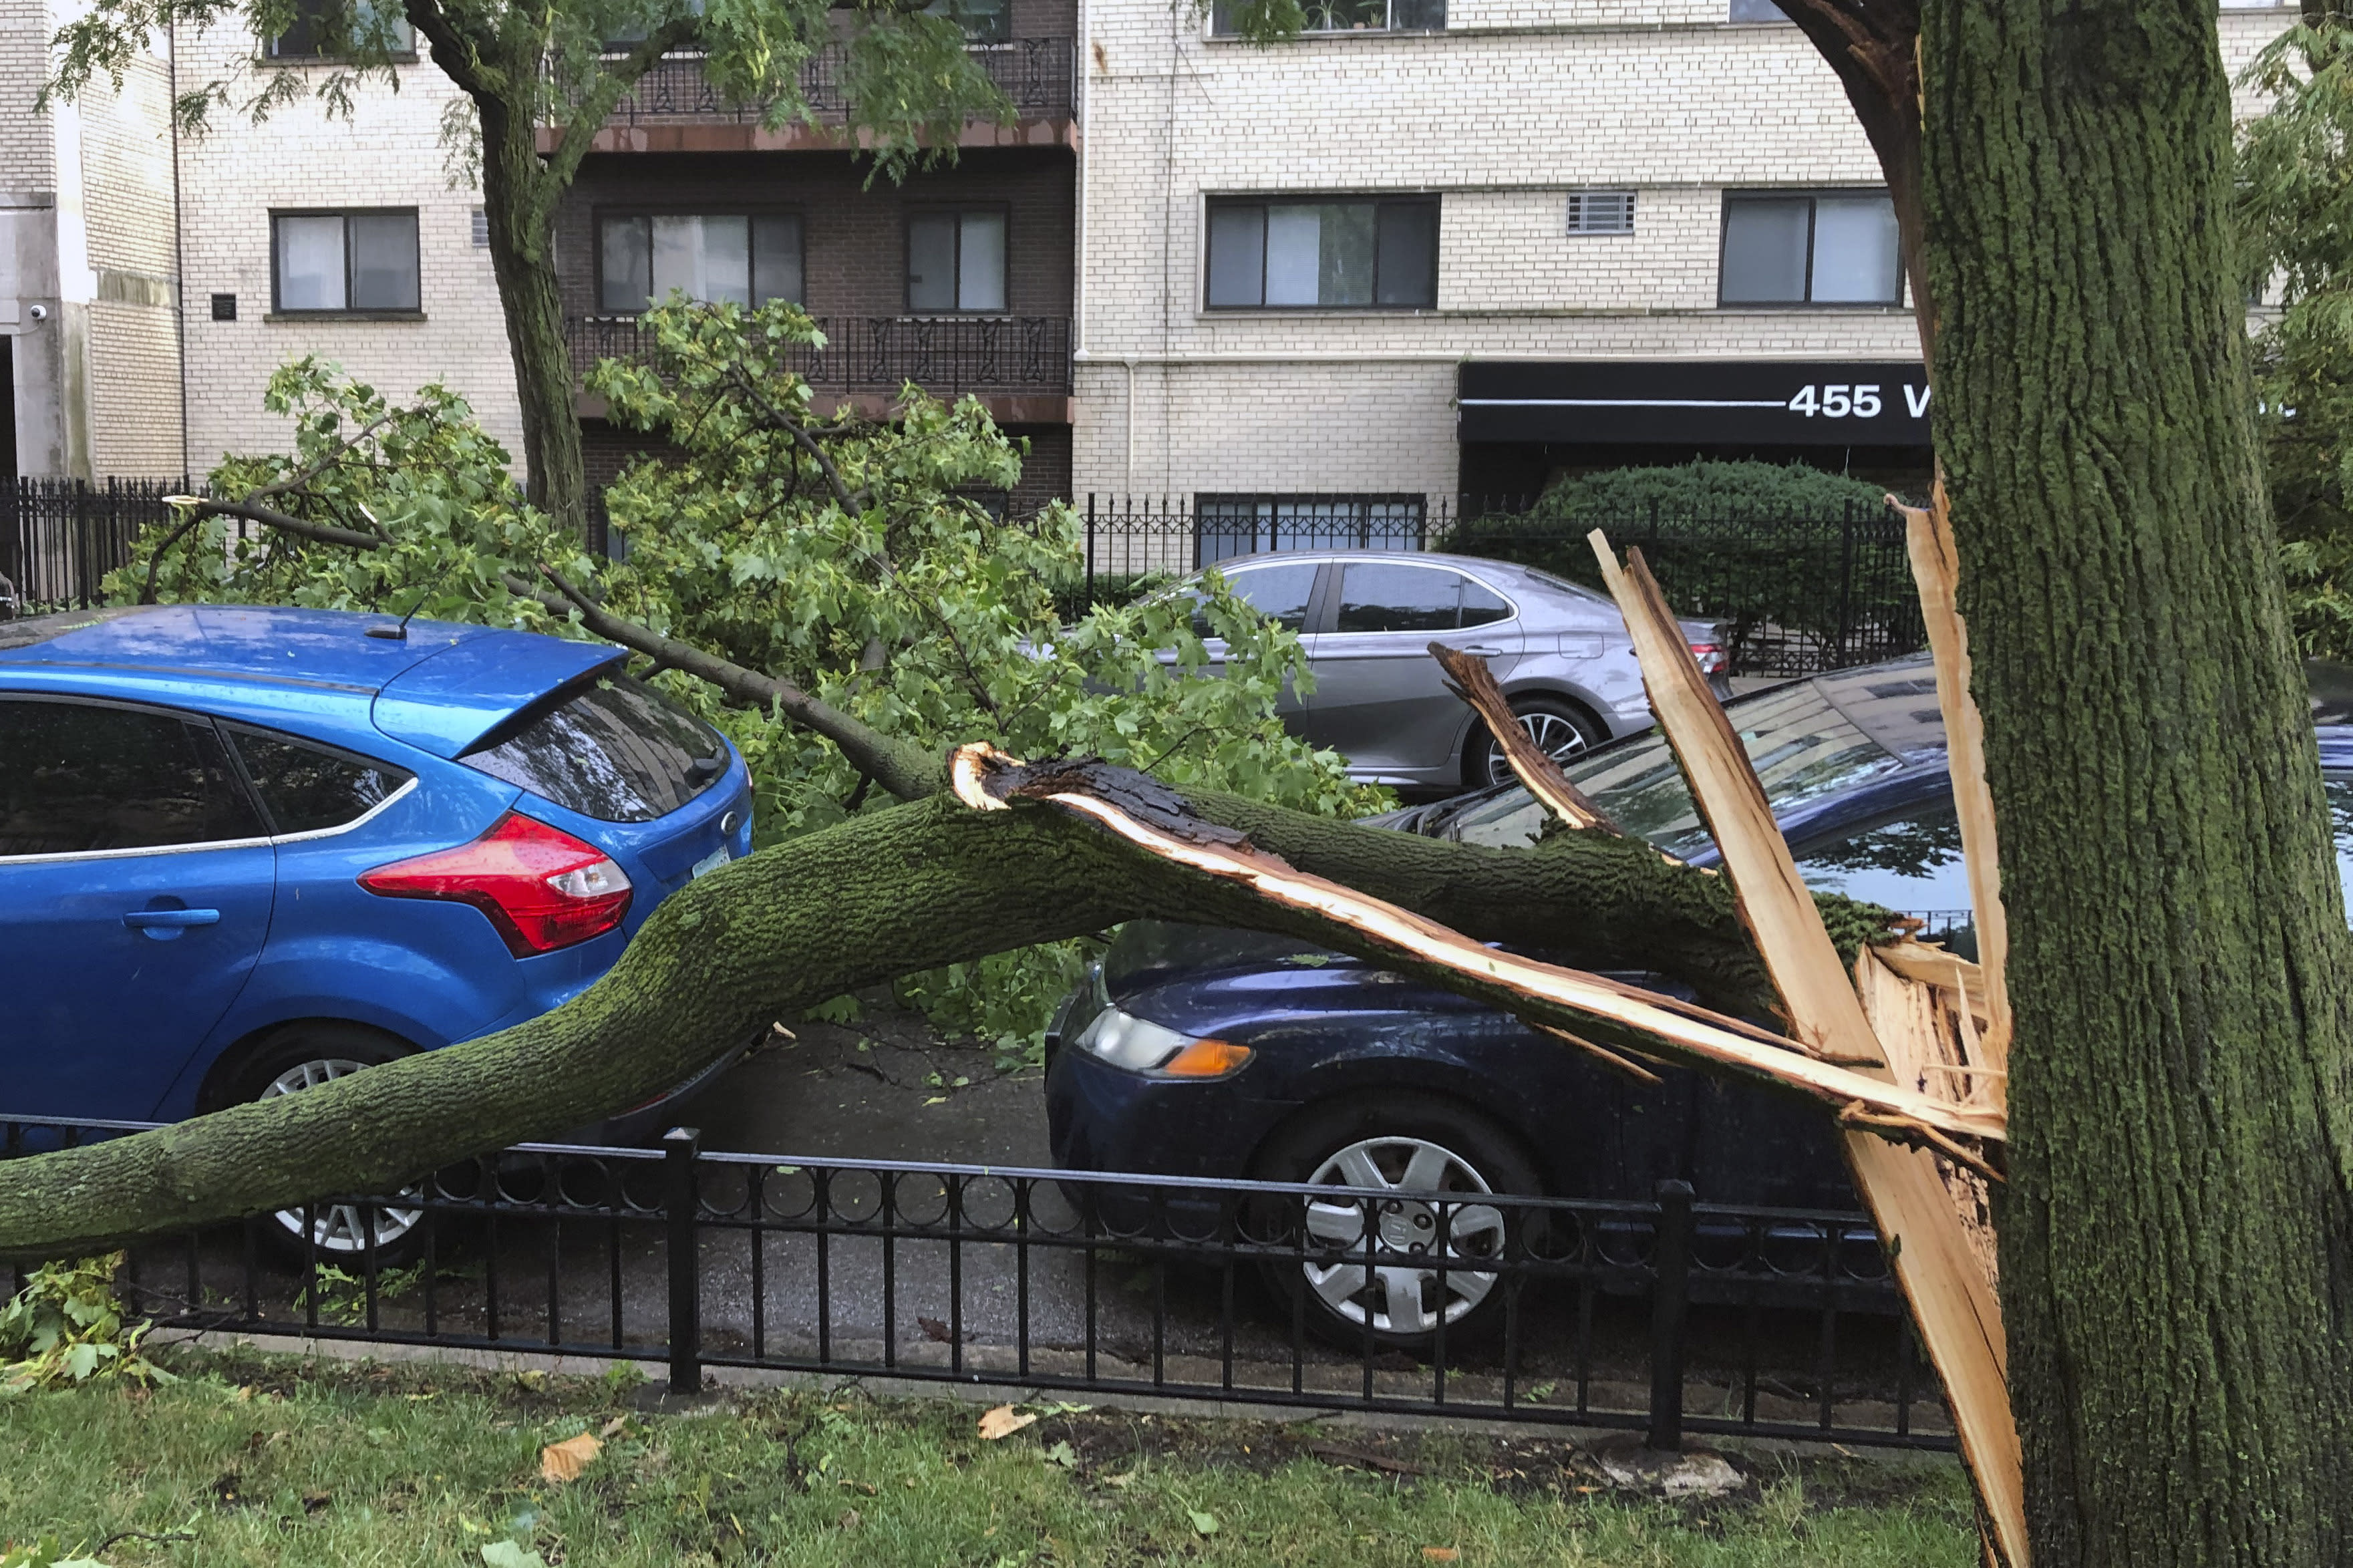 A downed tree limb blocks a roadway in Chicago's Lakeview neighborhood on Monday, Aug. 10, 2020. A rare storm packing 100 mph winds and with power similar to an inland hurricane swept across the Midwest on Monday, blowing over trees, flipping vehicles, causing widespread property damage, and leaving hundreds of thousands without power as it moved through Chicago and into Indiana and Michigan. (AP Photo/Tom Berman)